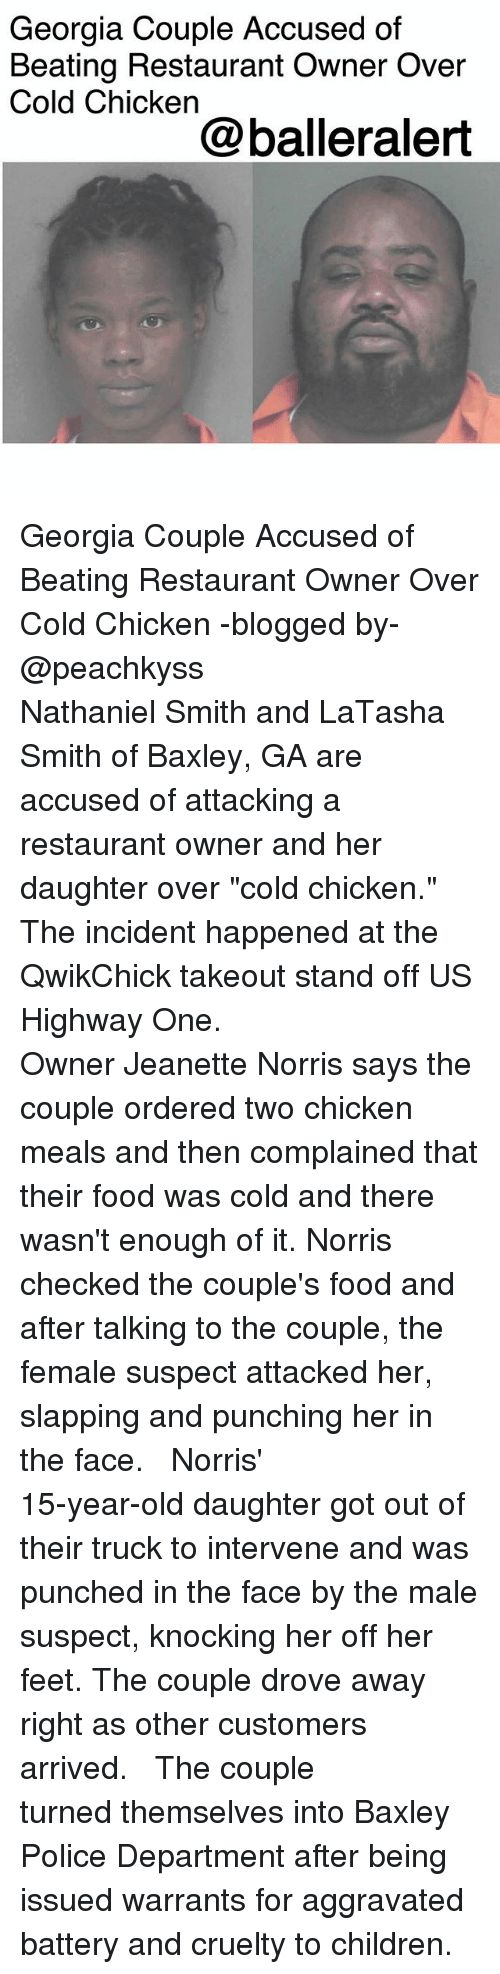 "Children, Food, and Memes: Georgia Couple Accused of  Beating Restaurant Owner Over  Cold Chicken  @balleralert Georgia Couple Accused of Beating Restaurant Owner Over Cold Chicken -blogged by- @peachkyss ⠀⠀⠀⠀⠀⠀⠀⠀⠀ ⠀⠀⠀⠀⠀⠀⠀⠀⠀ Nathaniel Smith and LaTasha Smith of Baxley, GA are accused of attacking a restaurant owner and her daughter over ""cold chicken."" The incident happened at the QwikChick takeout stand off US Highway One. ⠀⠀⠀⠀⠀⠀⠀⠀⠀ ⠀⠀⠀⠀⠀⠀⠀⠀⠀ Owner Jeanette Norris says the couple ordered two chicken meals and then complained that their food was cold and there wasn't enough of it. Norris checked the couple's food and after talking to the couple, the female suspect attacked her, slapping and punching her in the face. ⠀⠀⠀⠀⠀⠀⠀⠀⠀ ⠀⠀⠀⠀⠀⠀⠀⠀⠀ Norris' 15-year-old daughter got out of their truck to intervene and was punched in the face by the male suspect, knocking her off her feet. The couple drove away right as other customers arrived. ⠀⠀⠀⠀⠀⠀⠀⠀⠀ ⠀⠀⠀⠀⠀⠀⠀⠀⠀ The couple turned themselves into Baxley Police Department after being issued warrants for aggravated battery and cruelty to children."